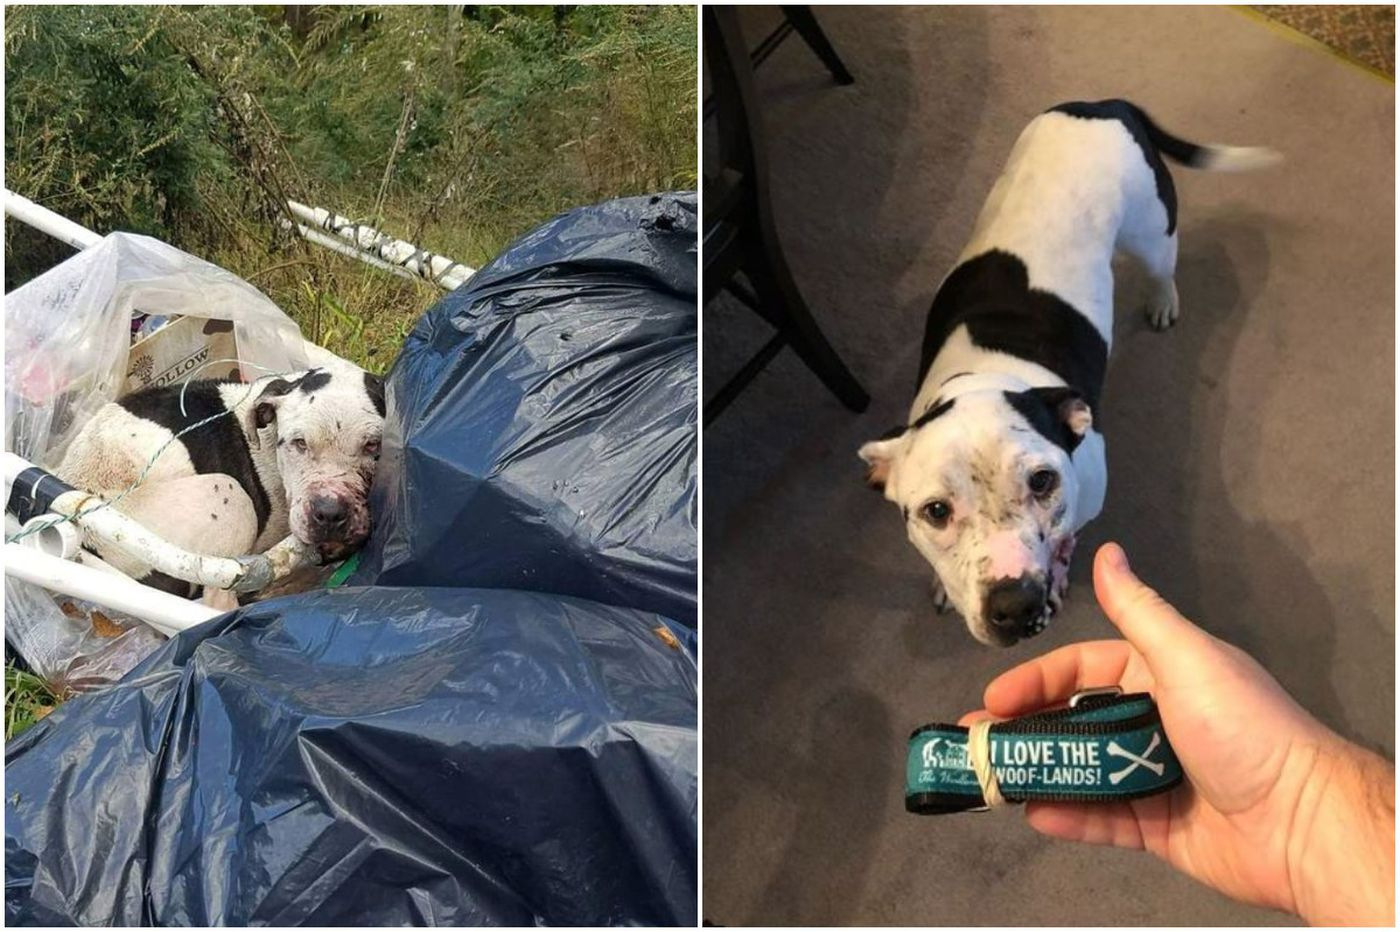 Found chained to a West Philly dumpster, this underdog is now having his day